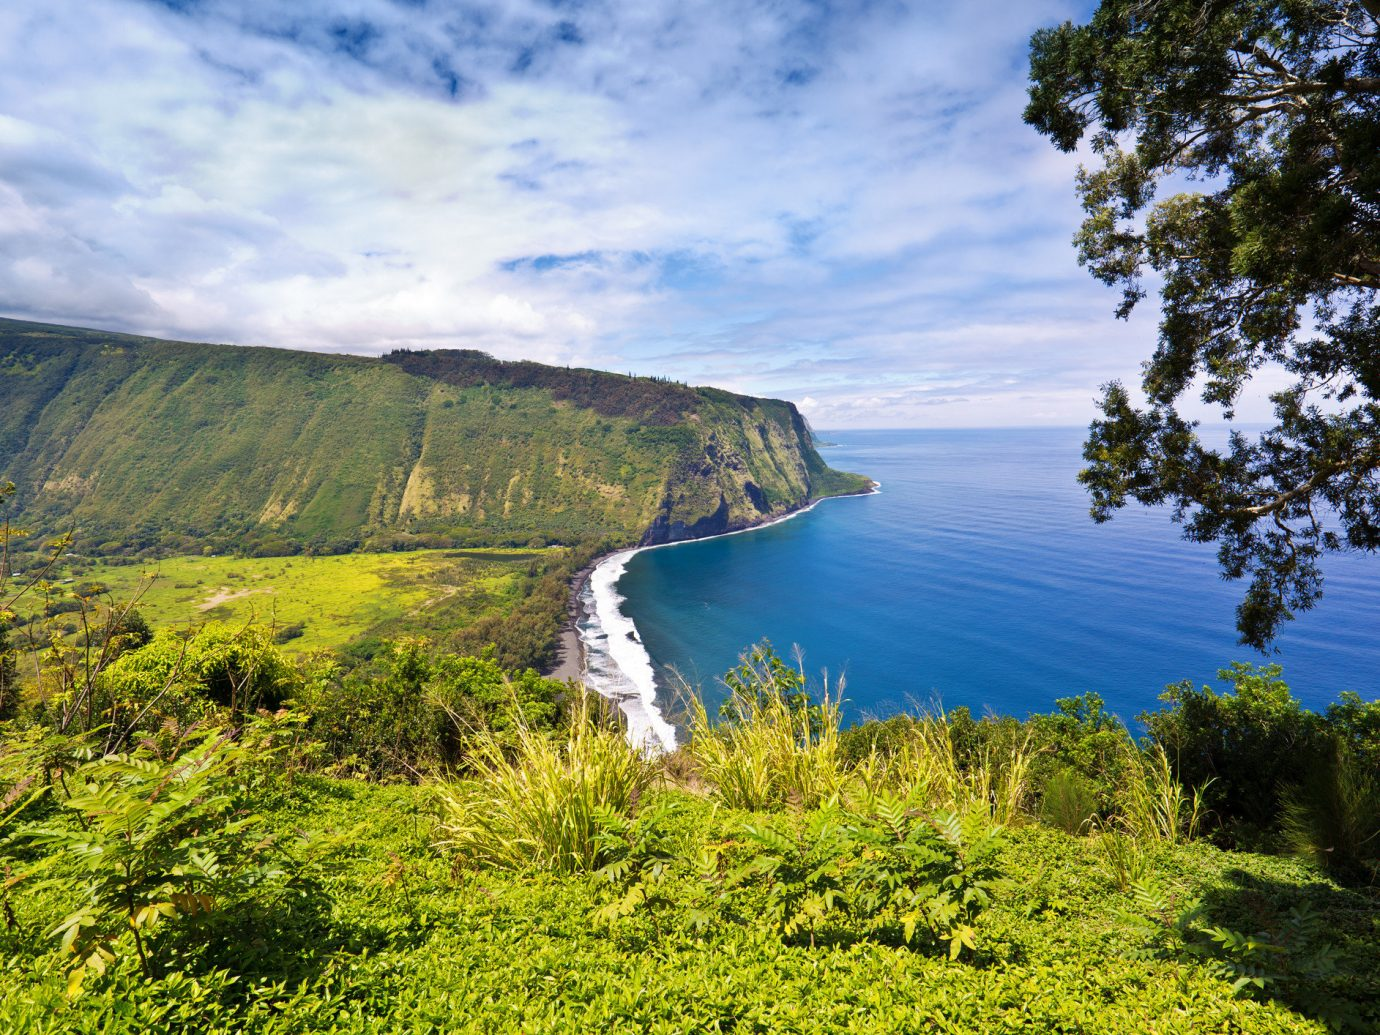 Beach tree outdoor grass water highland sky Nature mountainous landforms landform geographical feature wilderness body of water mountain green Lake Coast hill cloud loch Sea River landscape cliff mountain range reservoir meadow fjord lush terrain ridge grassy hillside pond surrounded